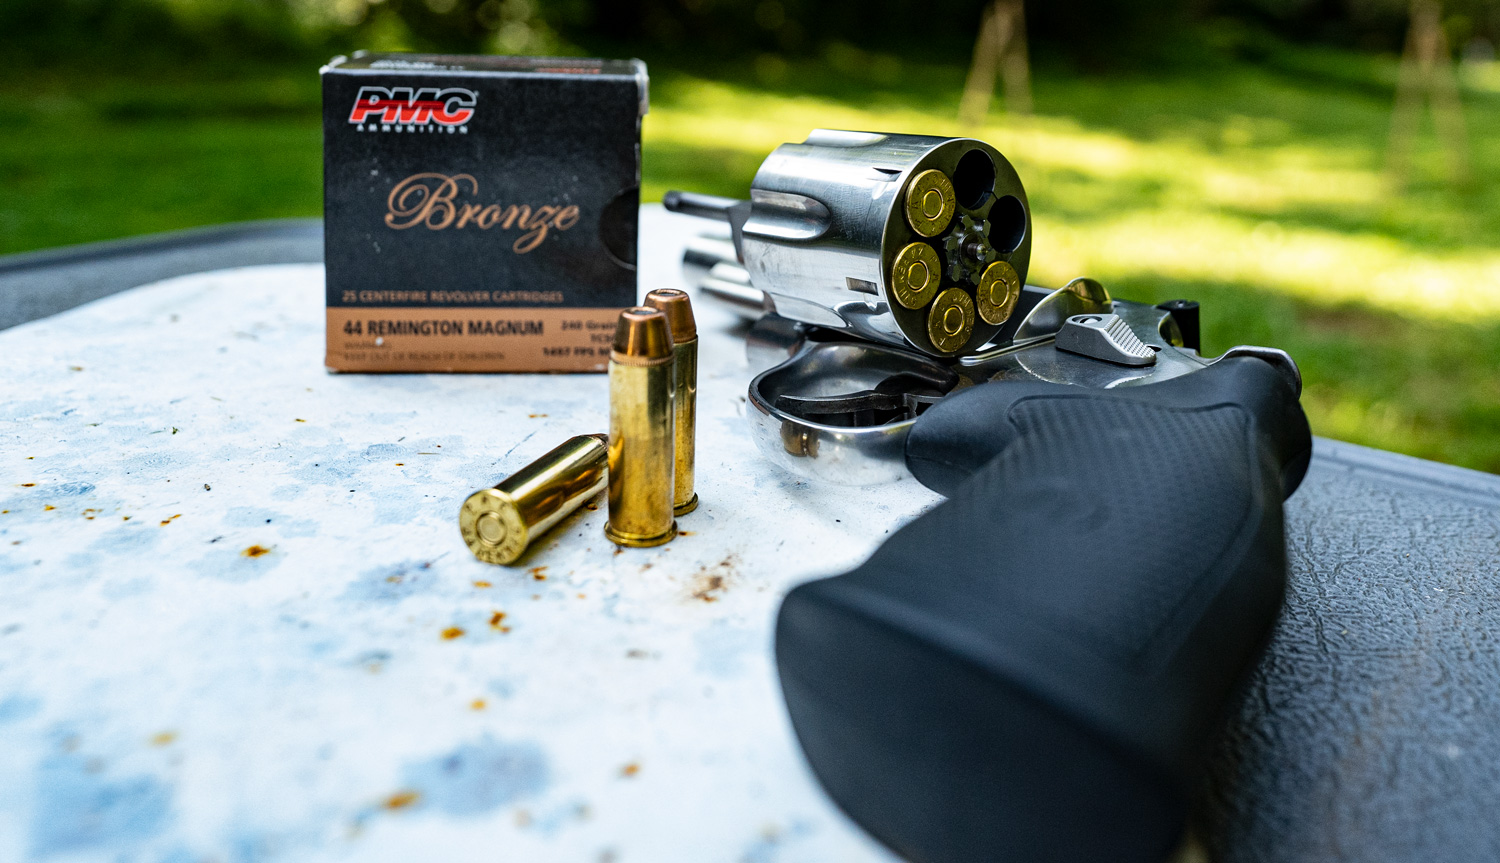 44 magnum ammo with revolver at a shooting range